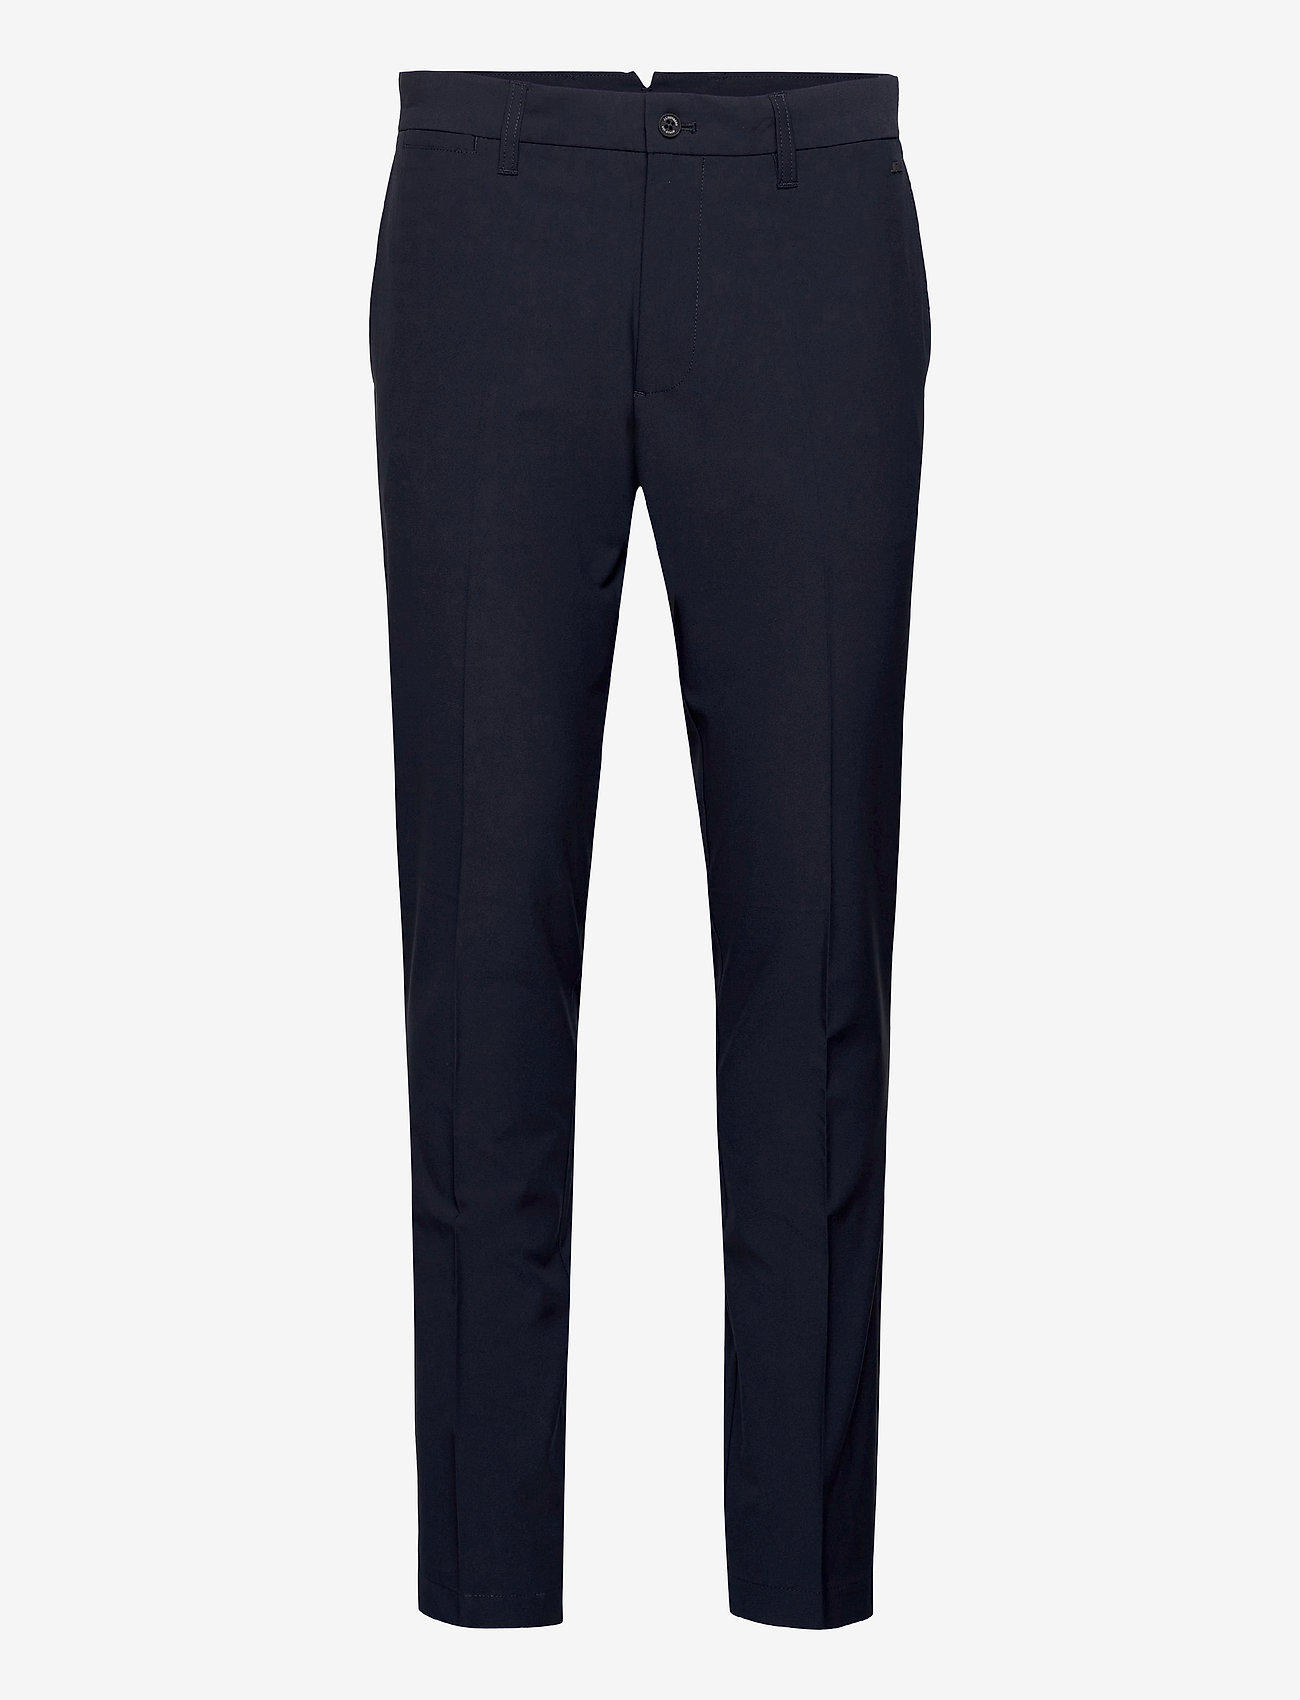 J. Lindeberg Golf - Ellott Golf Pant - trainingshosen - jl navy - 1